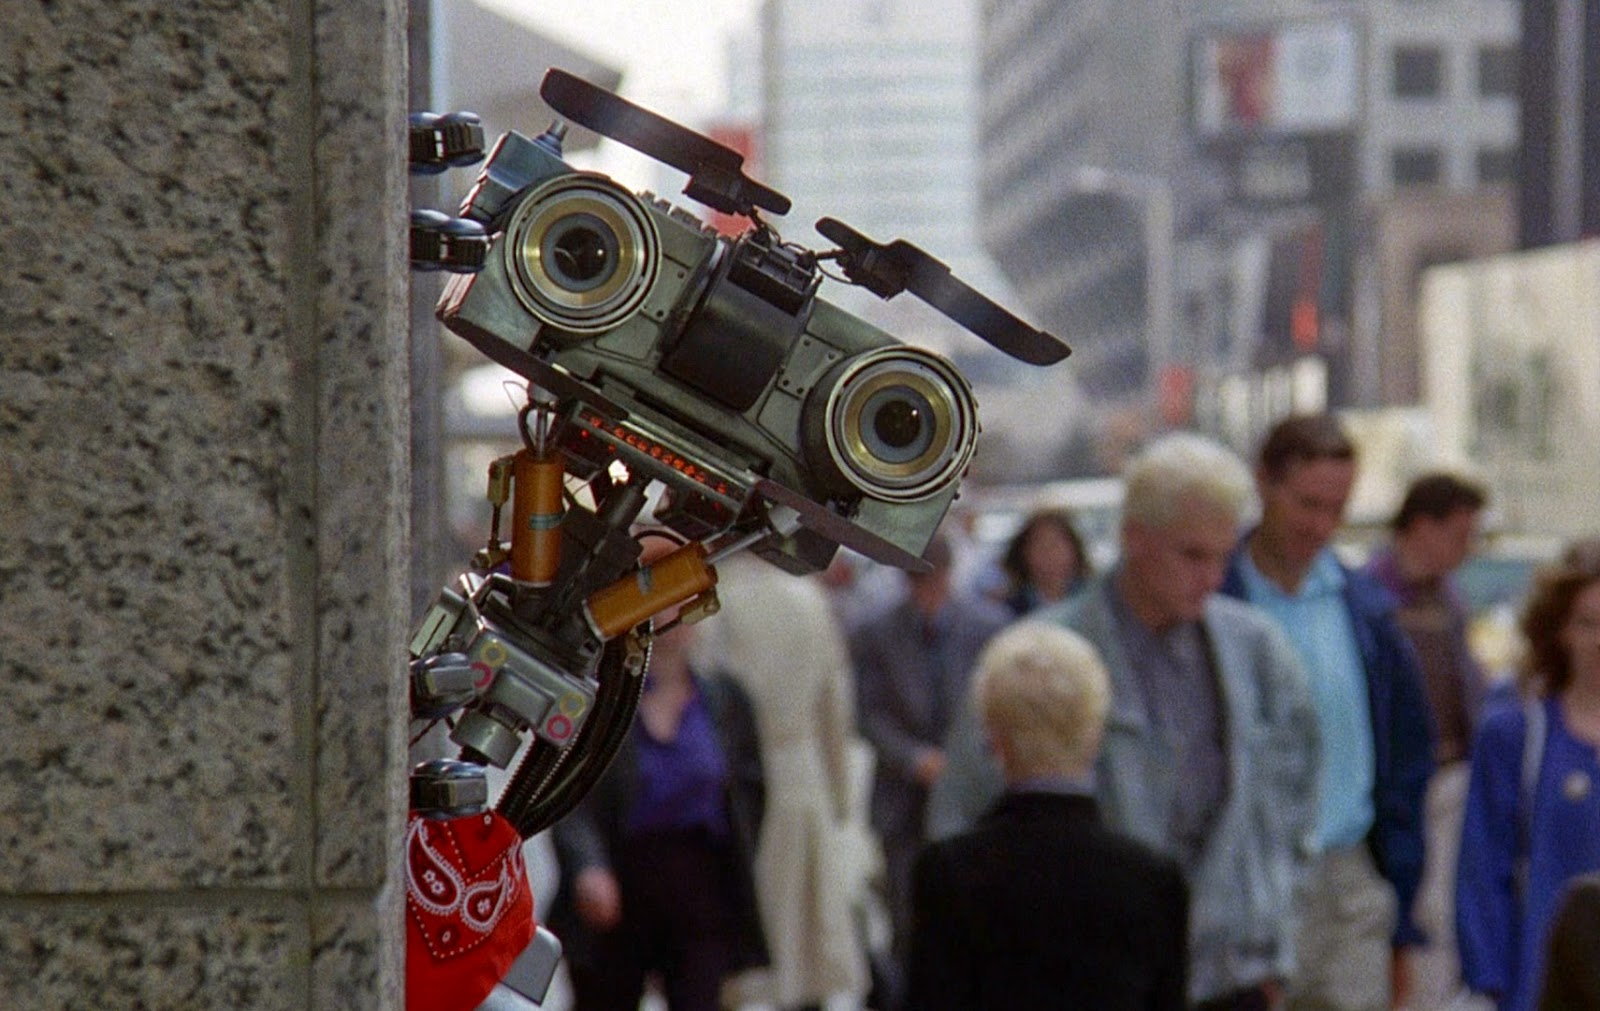 Johnny 5 – famous robot